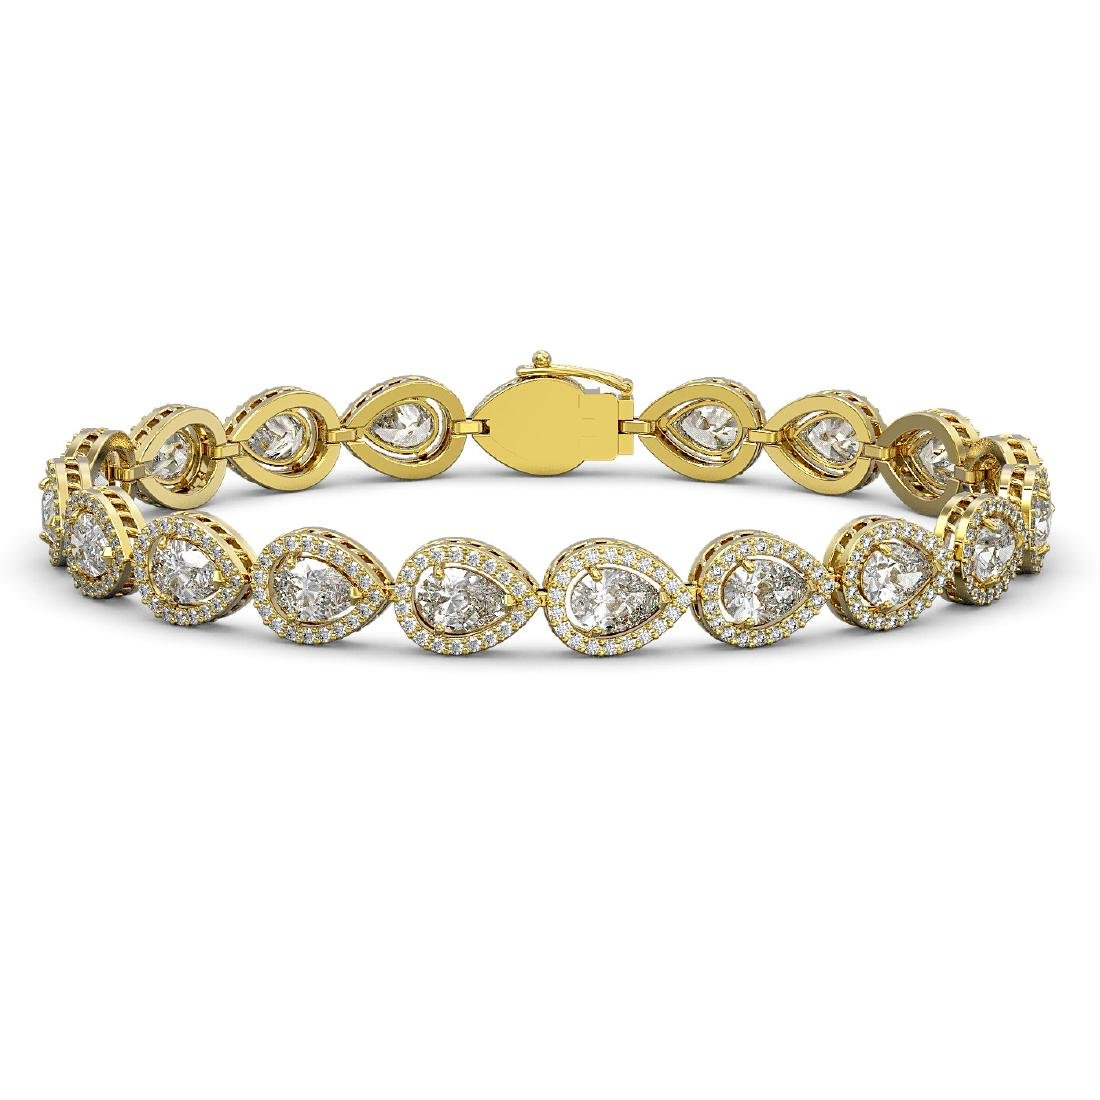 14.28 CTW Pear Diamond Designer Bracelet 18K Yellow